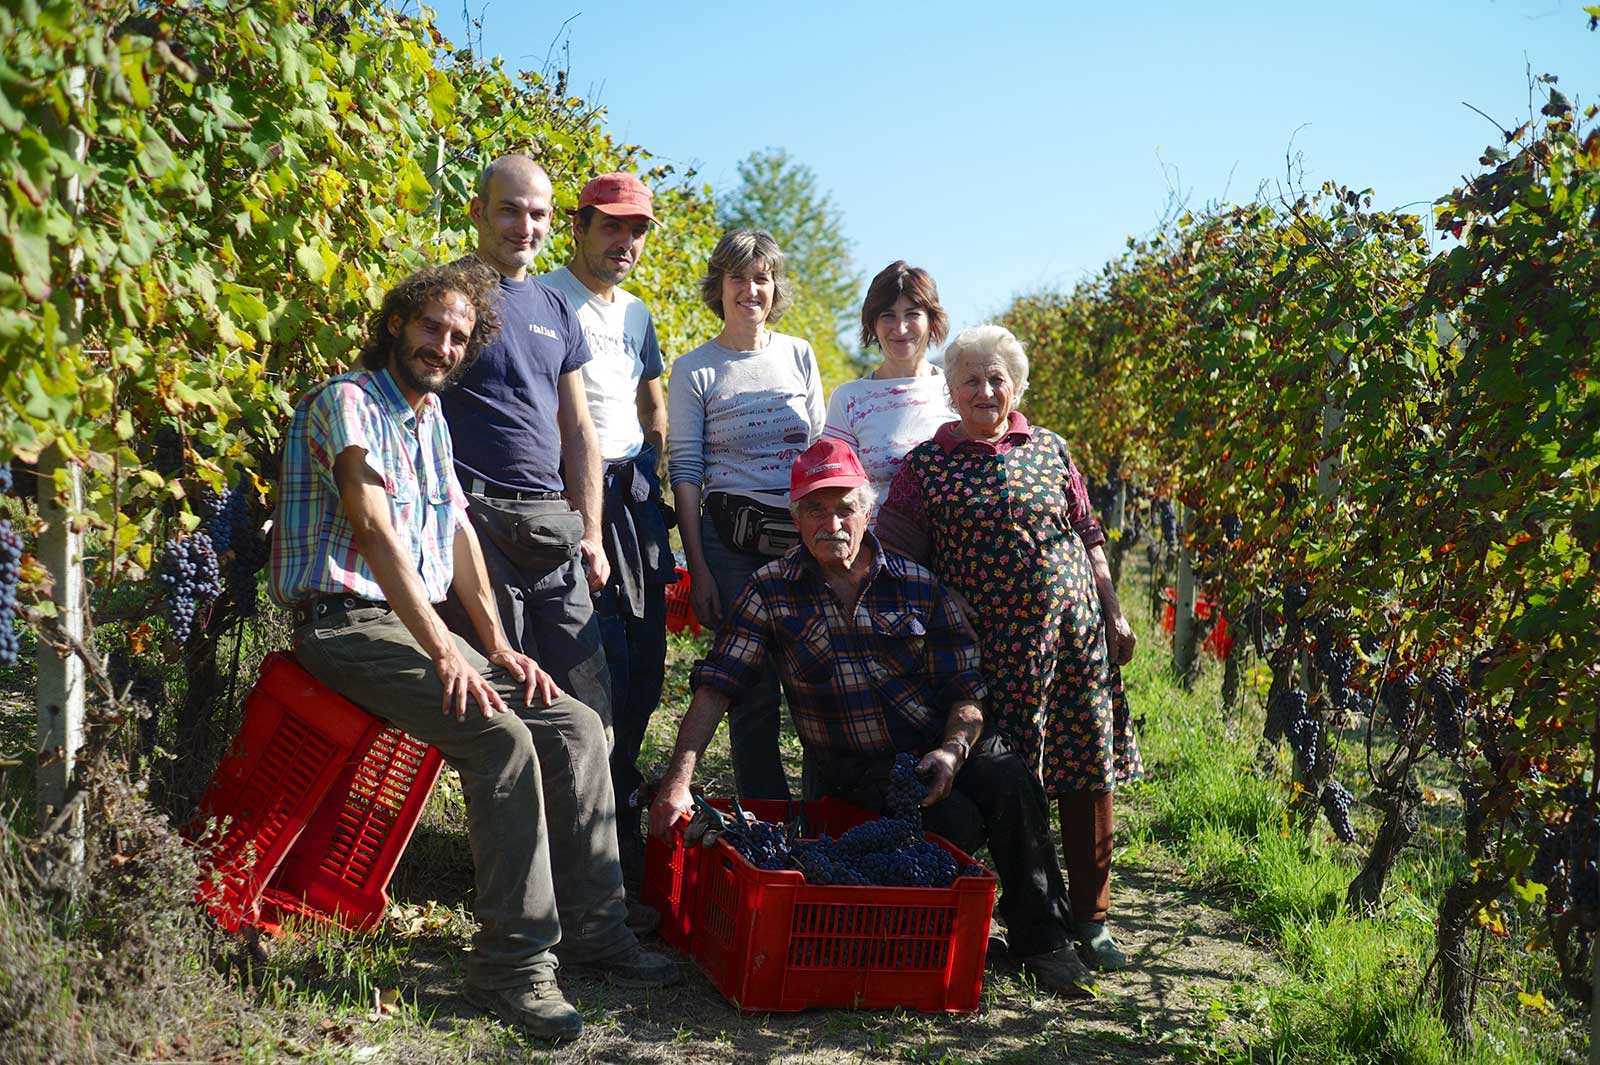 Winegrowers of the Produttori del Barbaresco